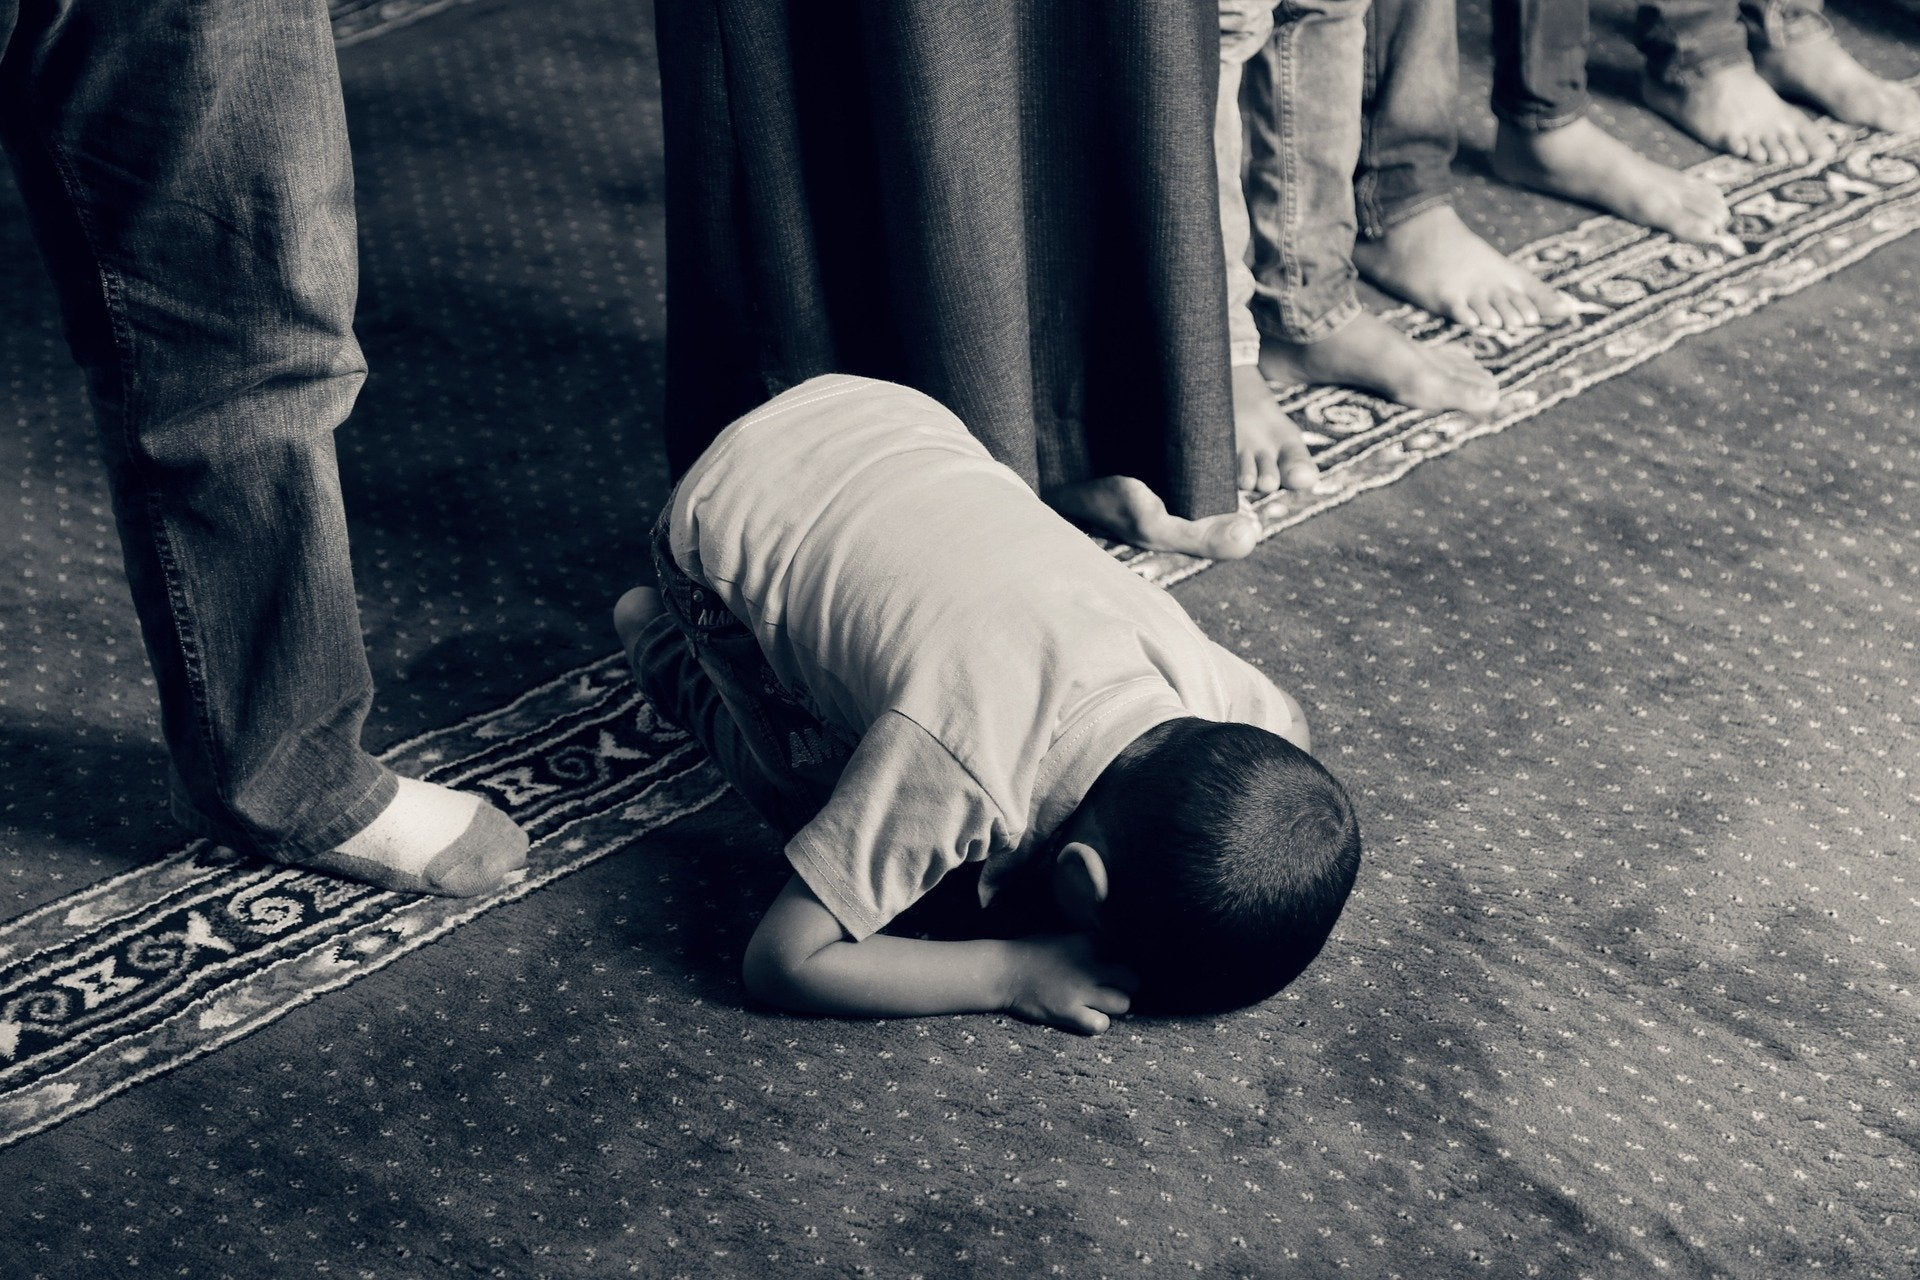 Dream of Snake in Islam during a Prayer